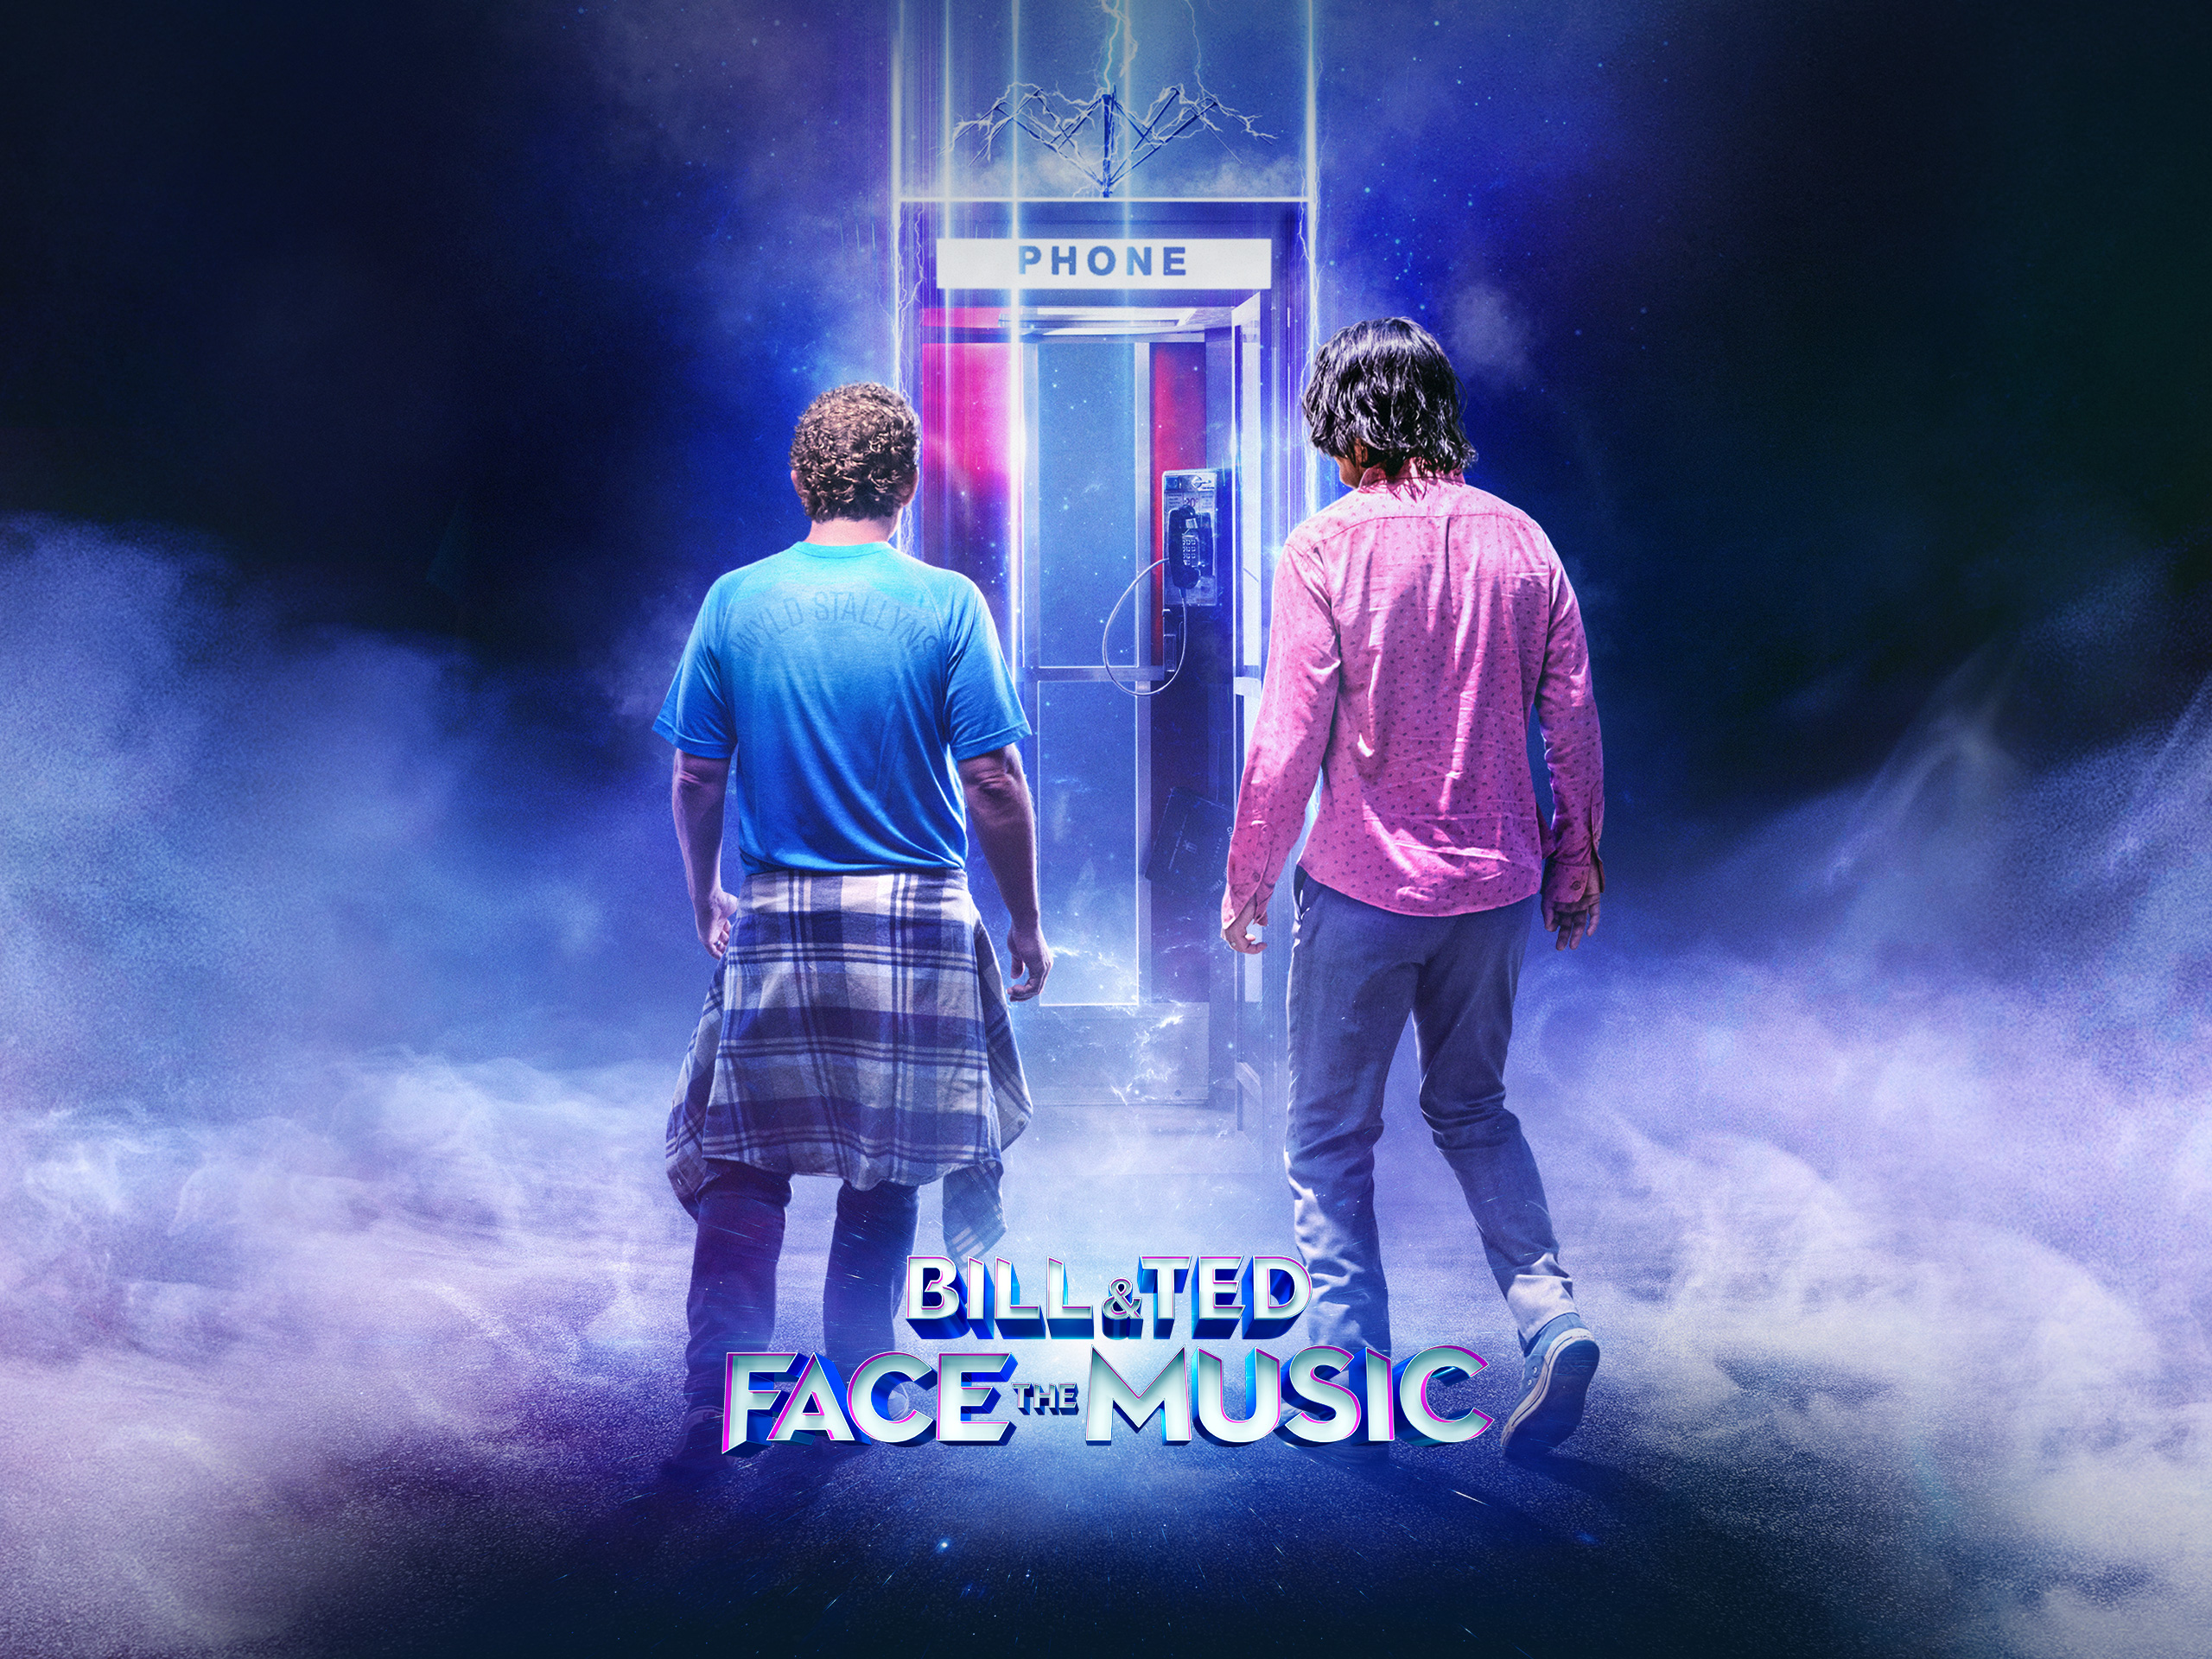 Bill and Ted return for another adventure through time and space.